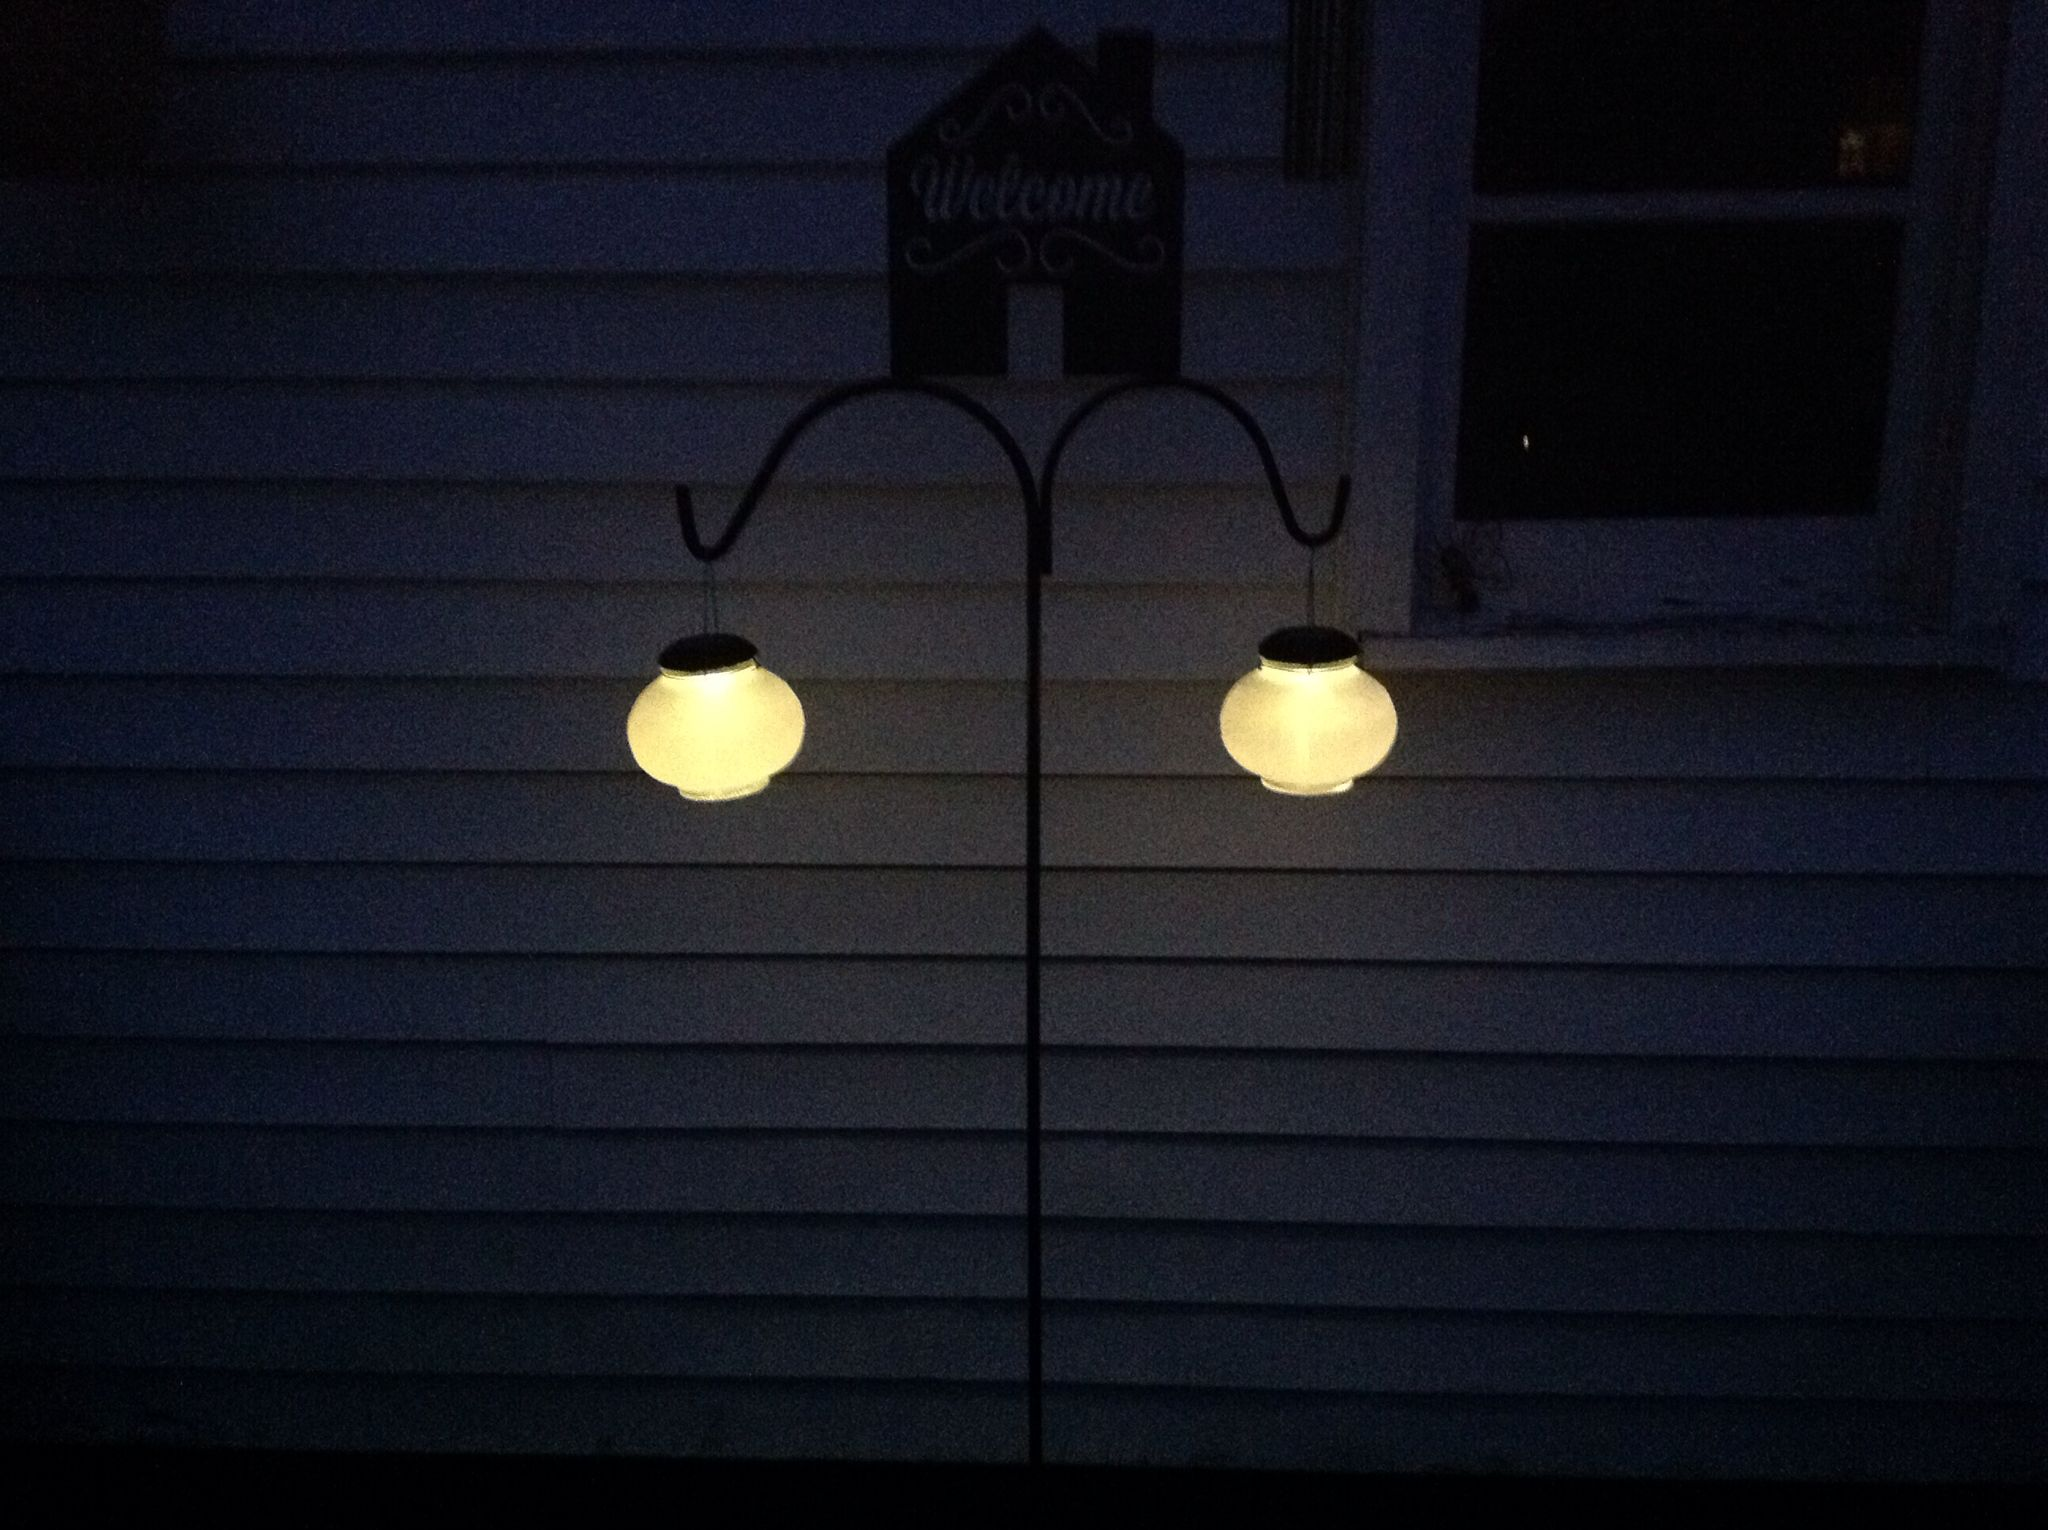 Outdoor Solar Lights Lowes Fascinating $2 Glass Light Globes From Habitat Restore  $298 Solar Lights From Inspiration